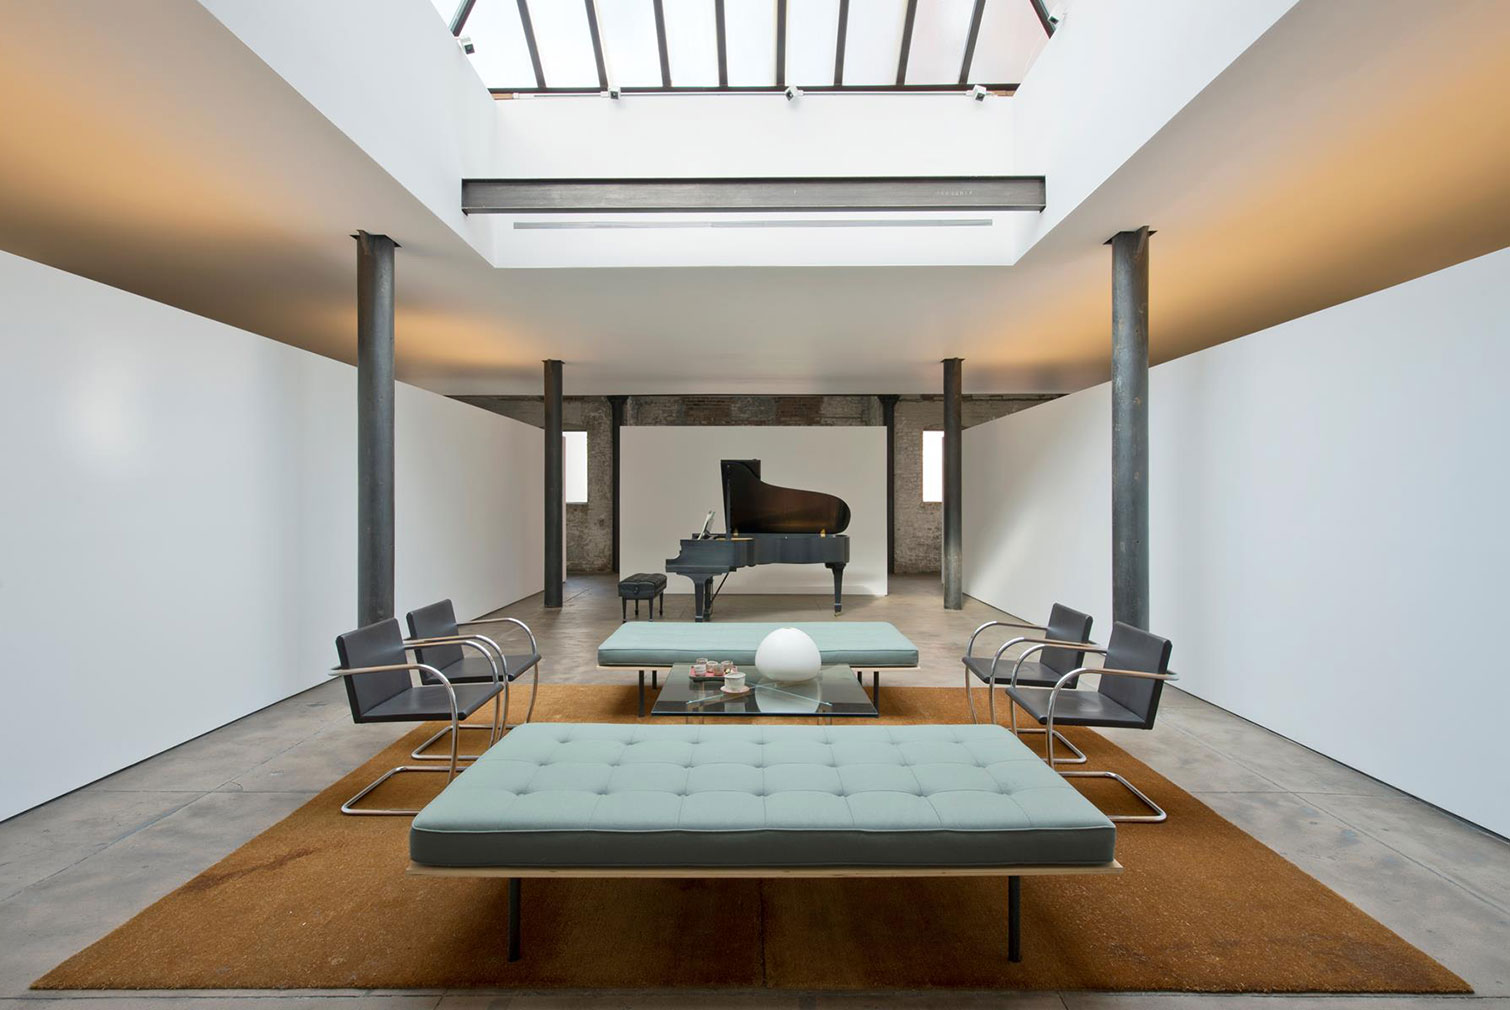 Minimalist concrete apartment lists for 11m in manhattan for Minimalist apartment nyc